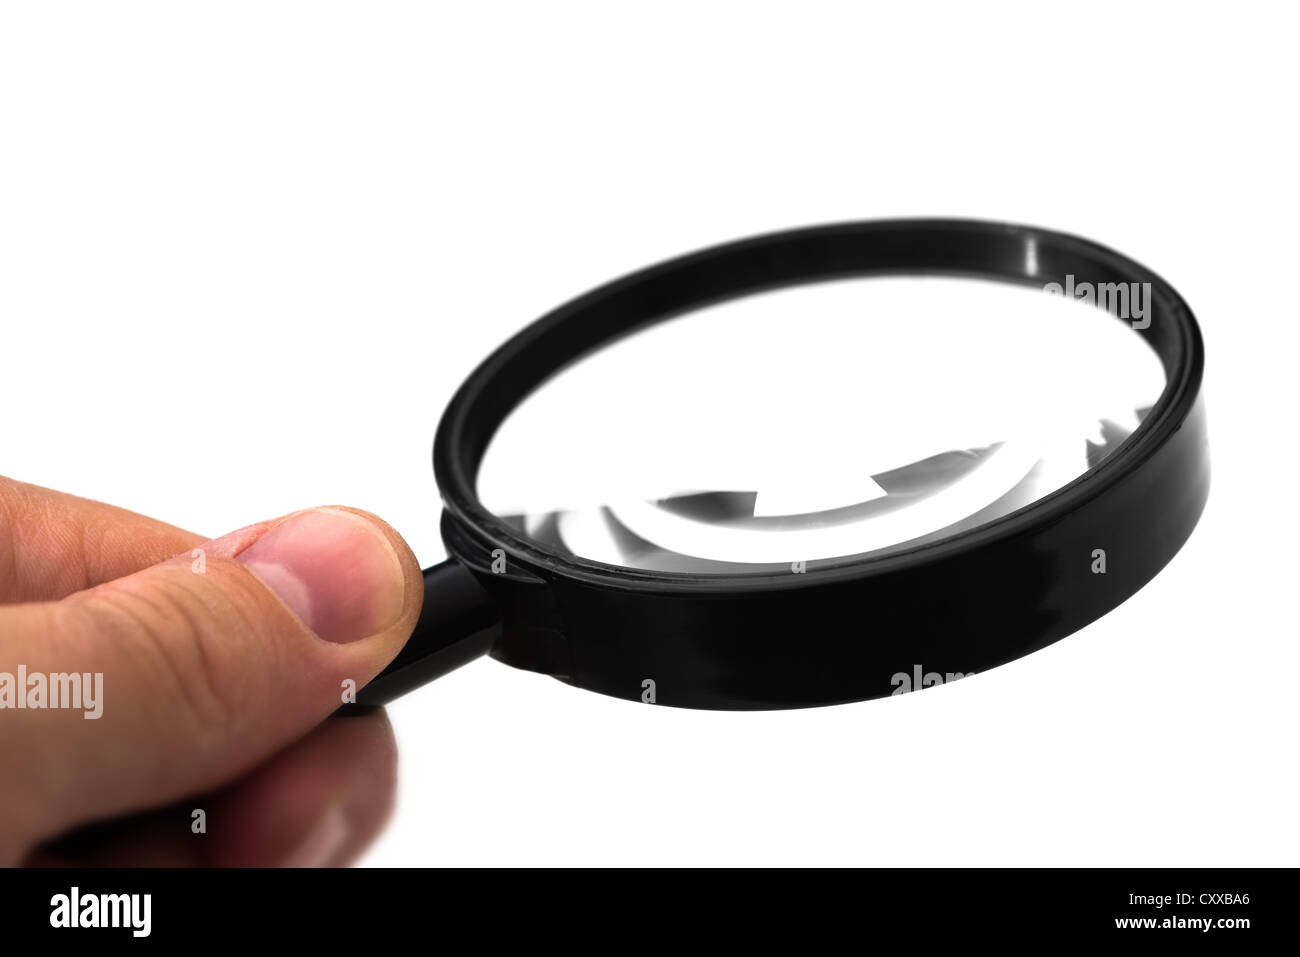 Magnifying glass cut out over white. - Stock Image